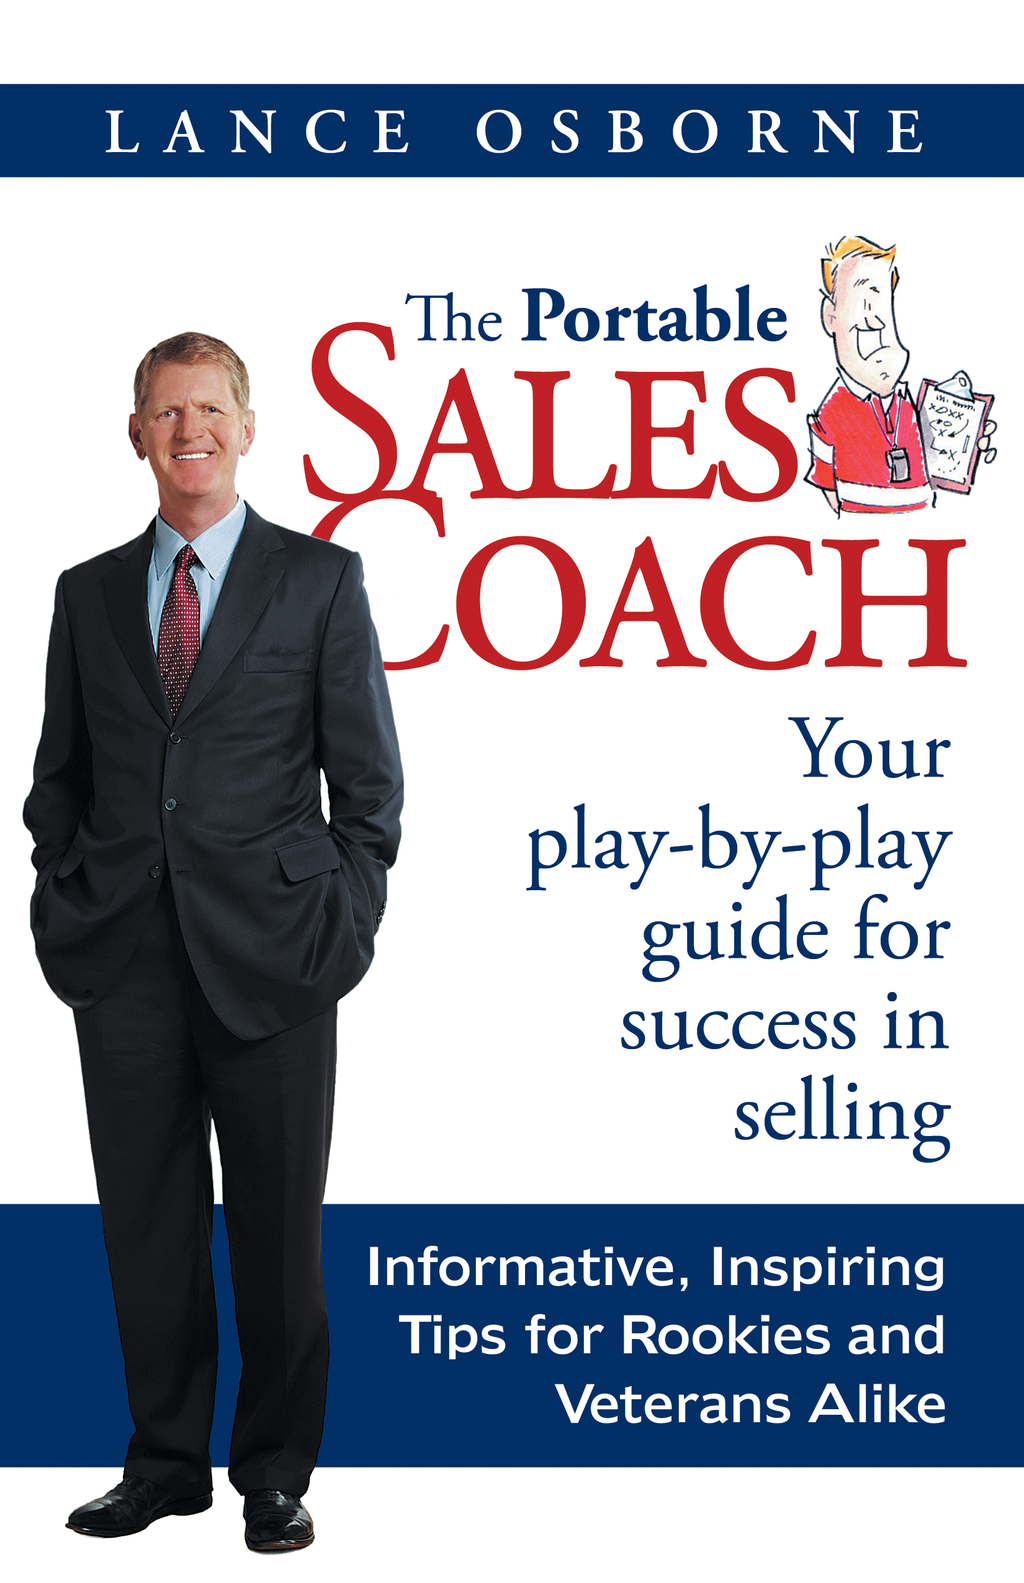 The Portable Sales Coach By: Lance Osborne